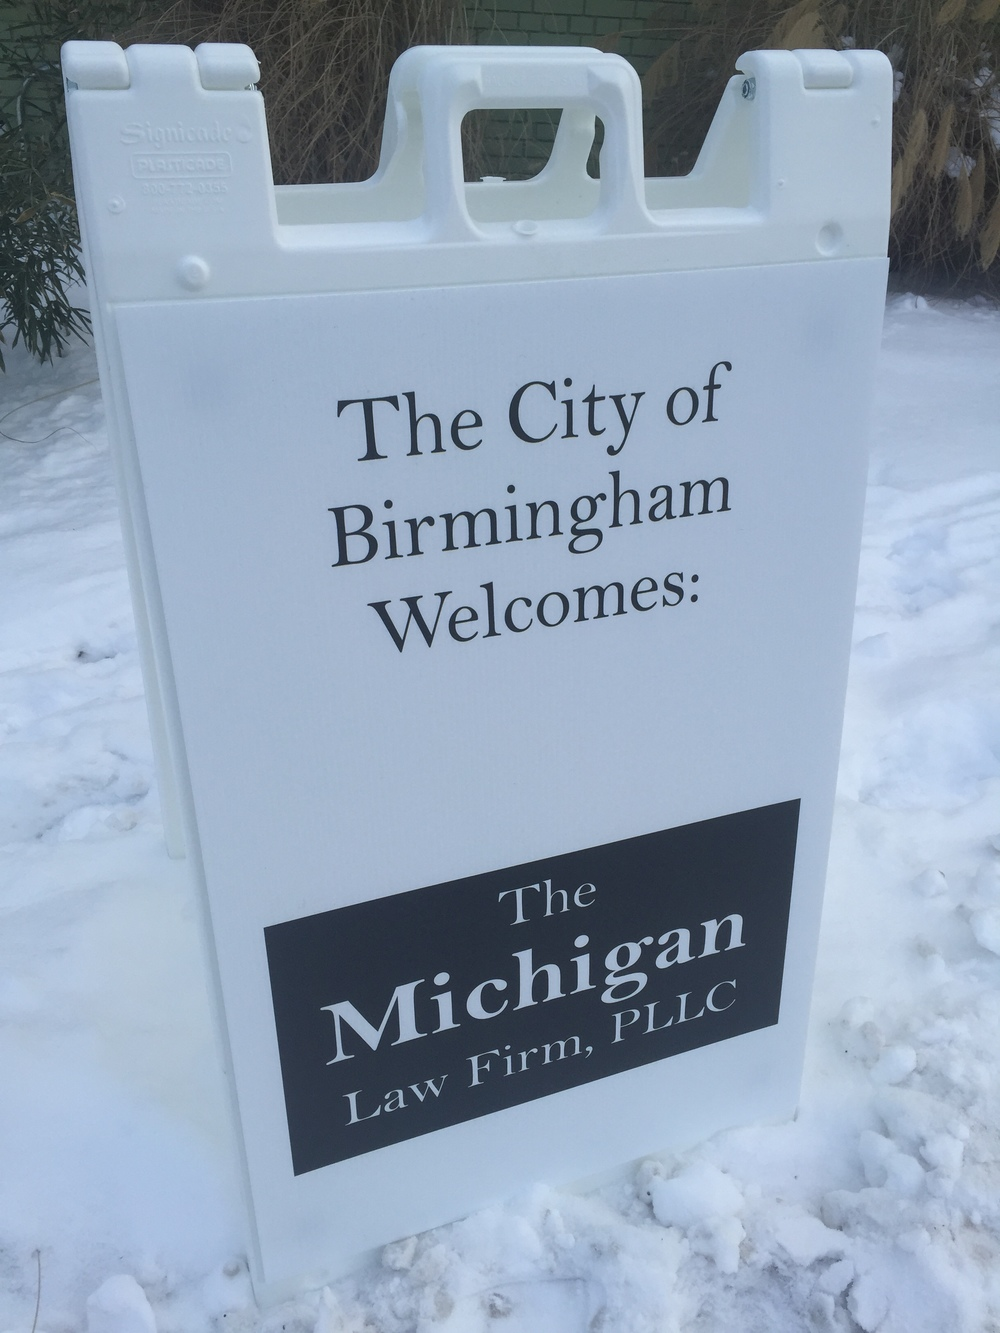 The City of Birmingham Welcomes The Michigan Law Firm, PLLC